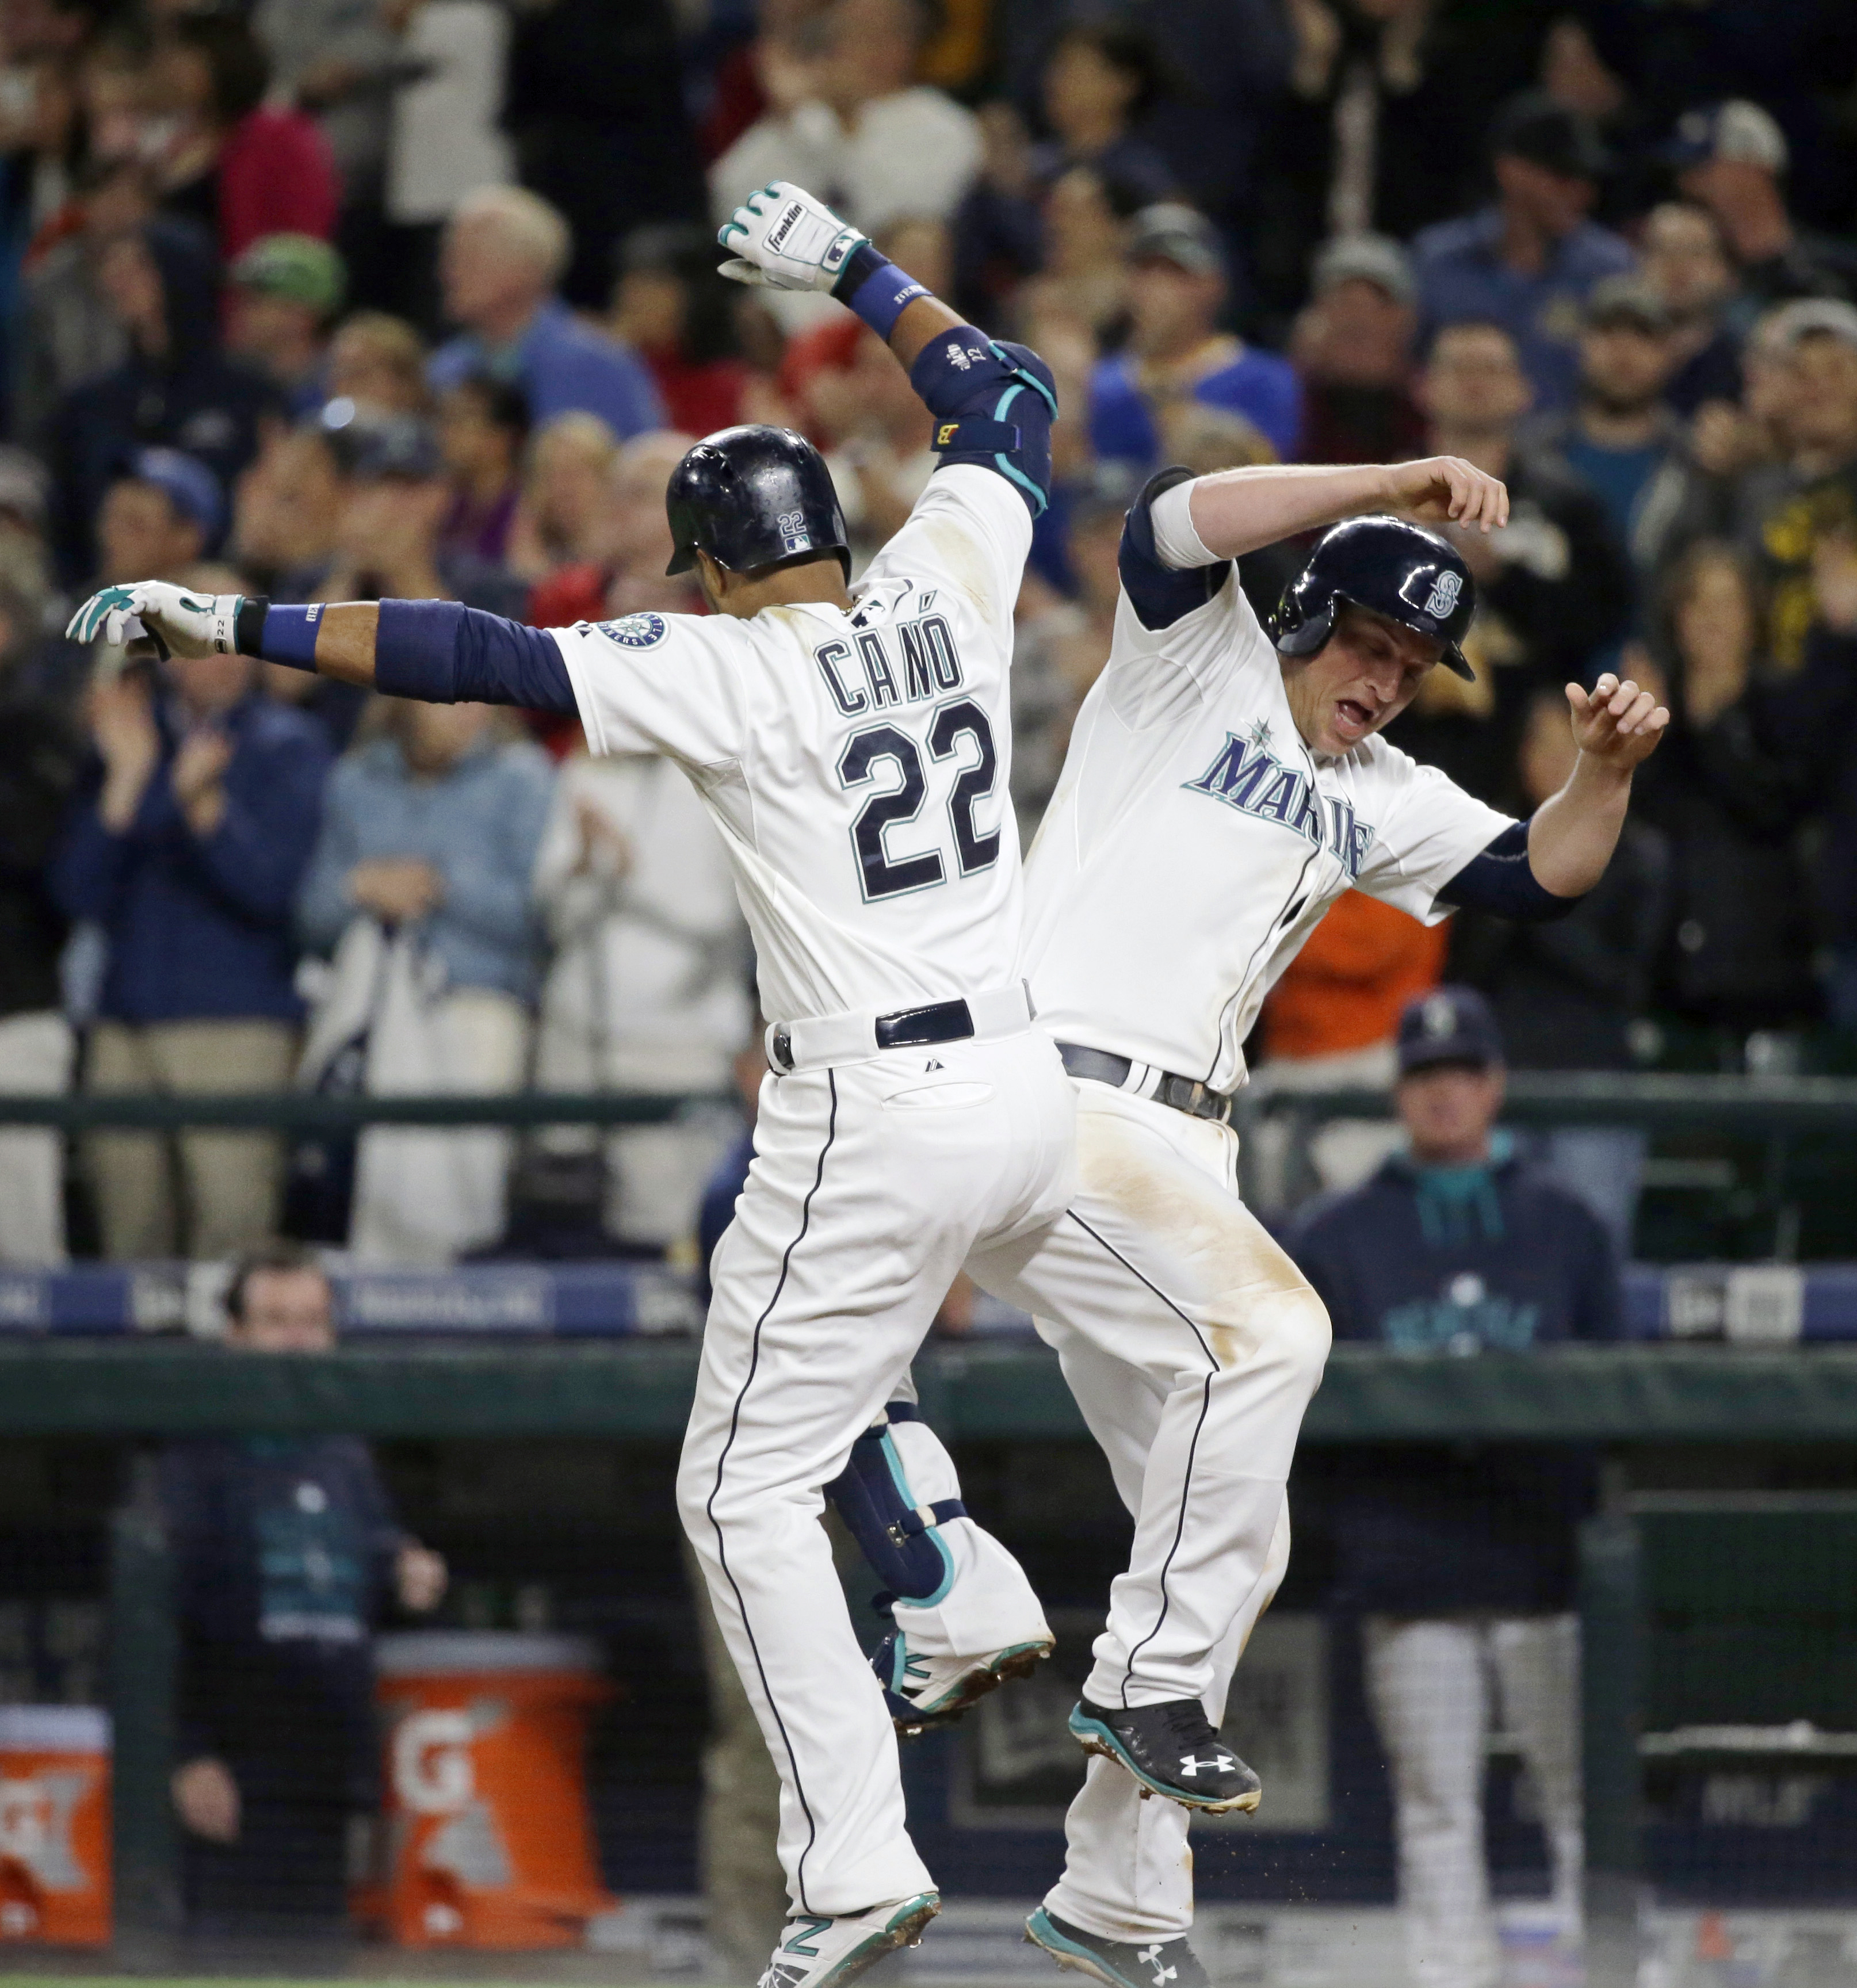 Seattle Mariners' Robinson Cano (22) and Kyle Seager, right, celebrate after Cano hit a two-run home run to score Seager in the sixth inning of a baseball game against the Houston Astros, Tuesday, Sept. 29, 2015, in Seattle. (AP Photo/Ted S. Warren)